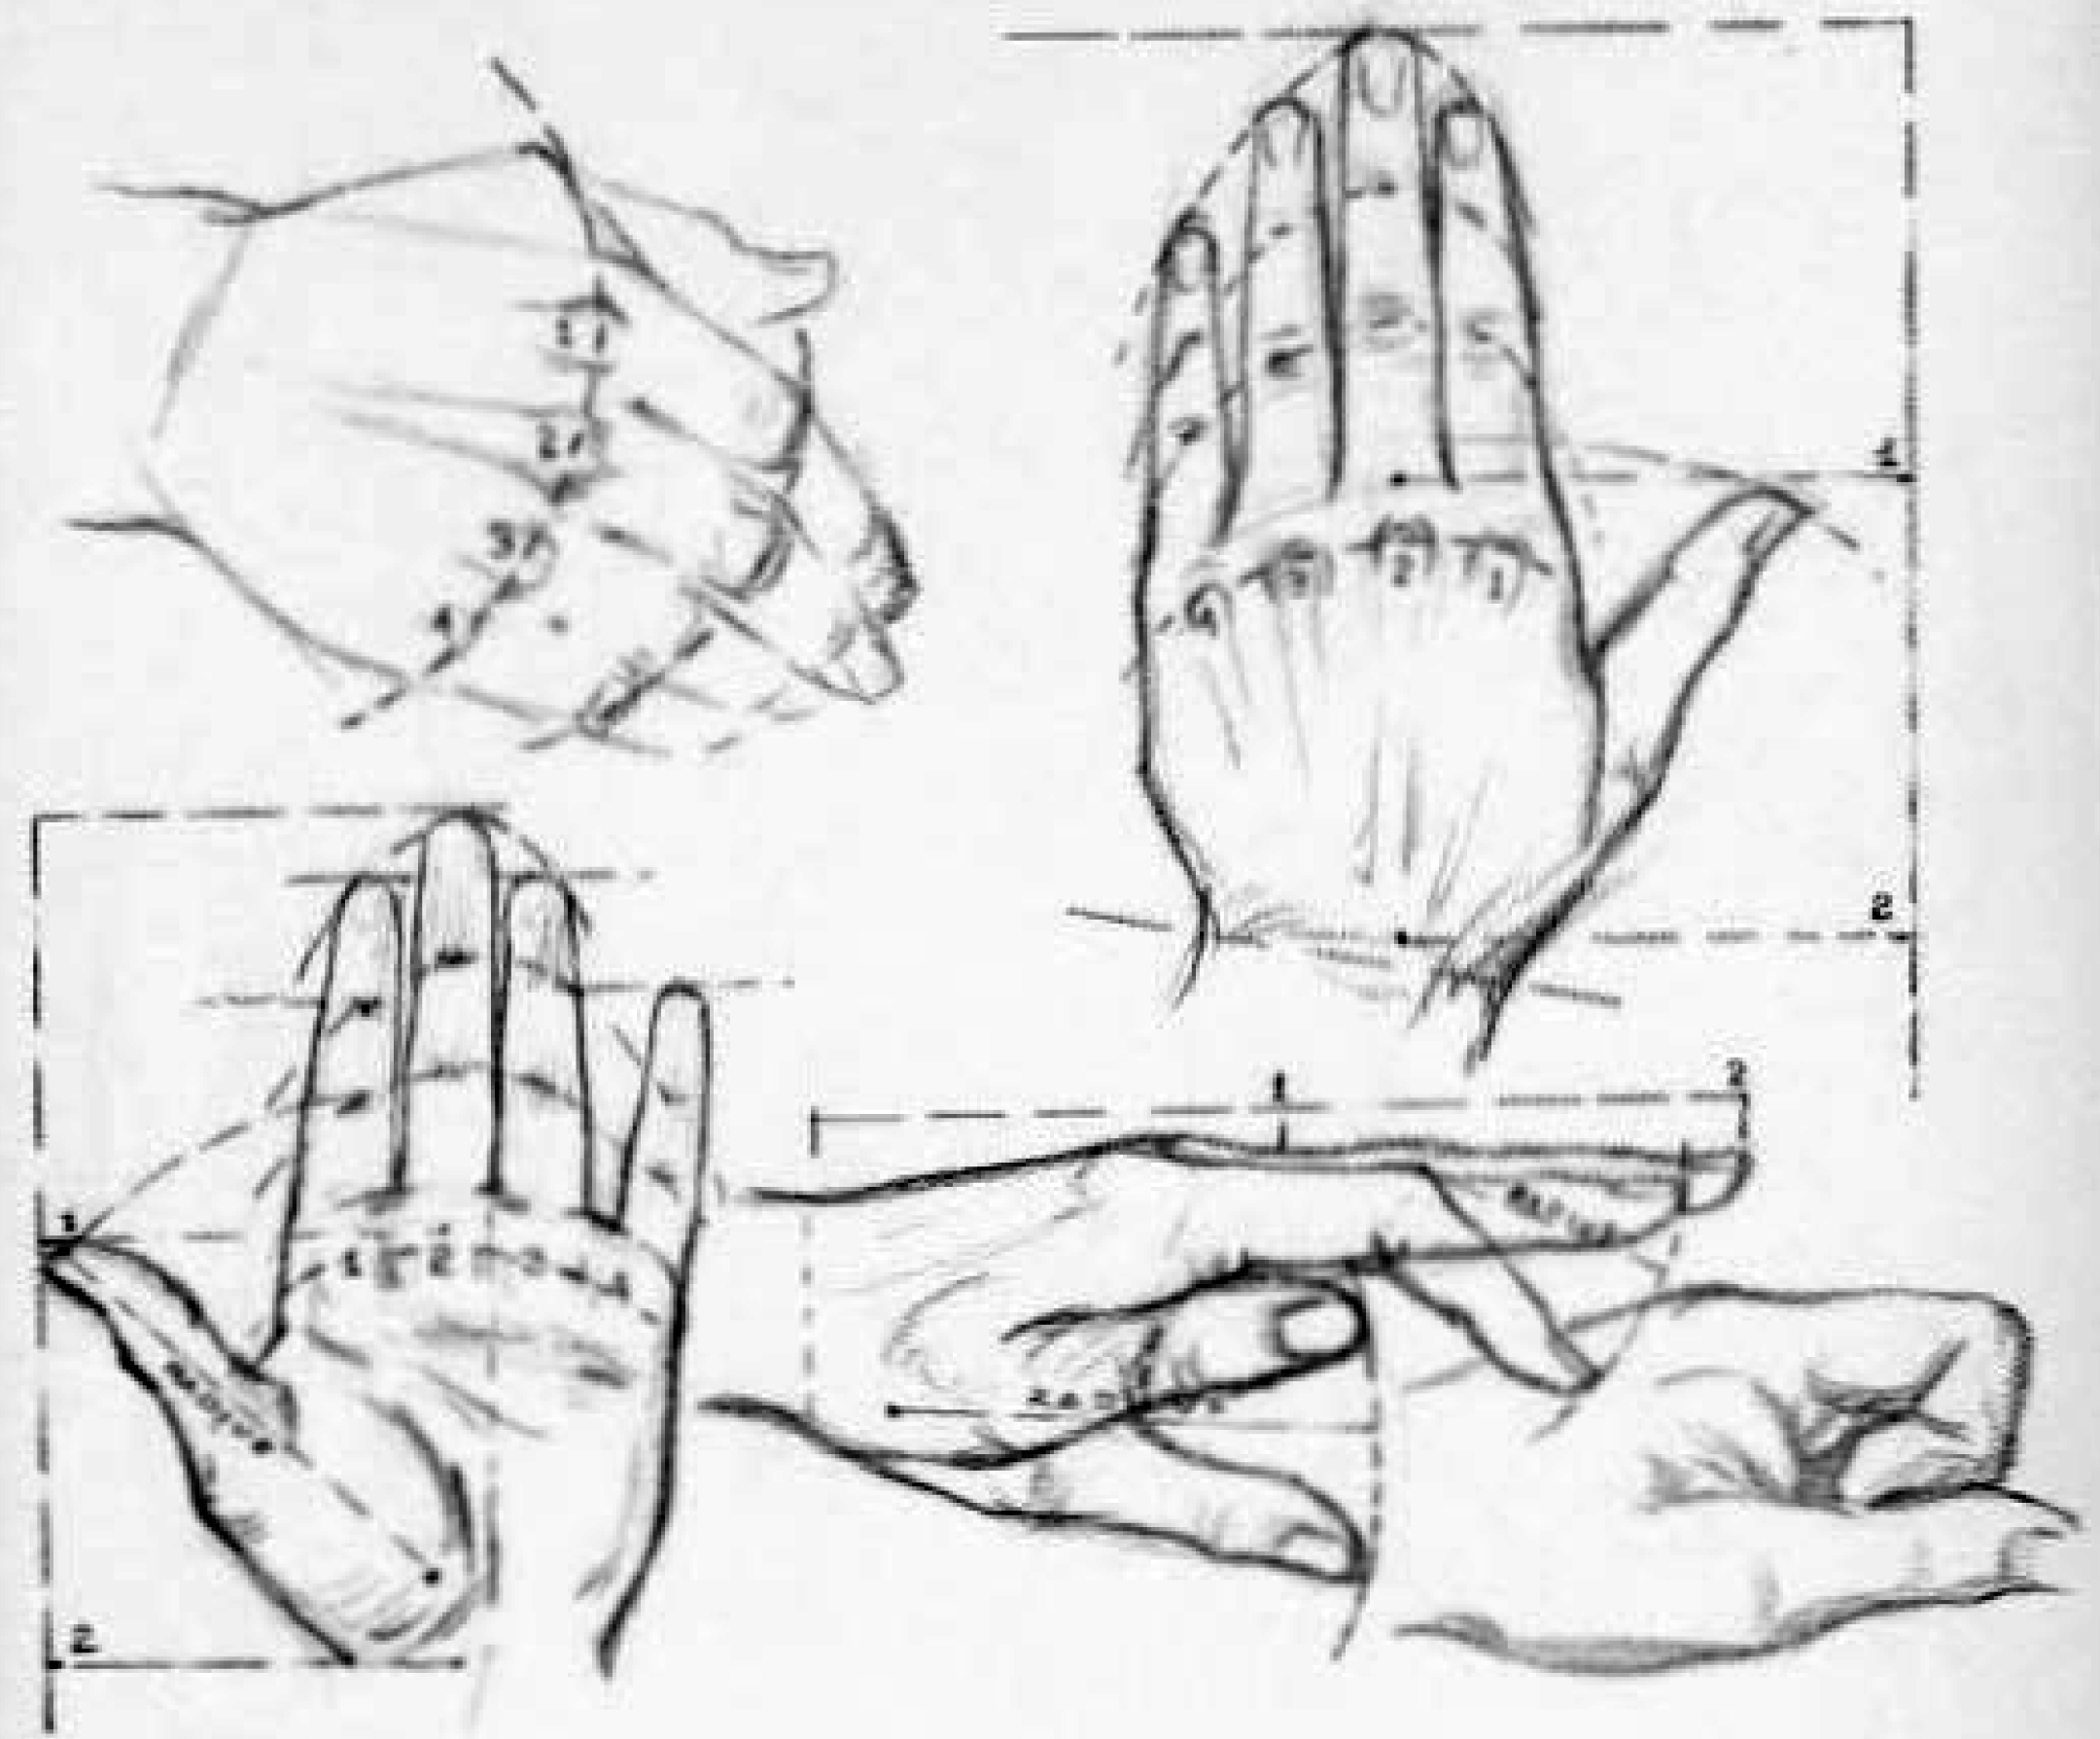 Drawing the proportions of the human hand - drawing proportional hands